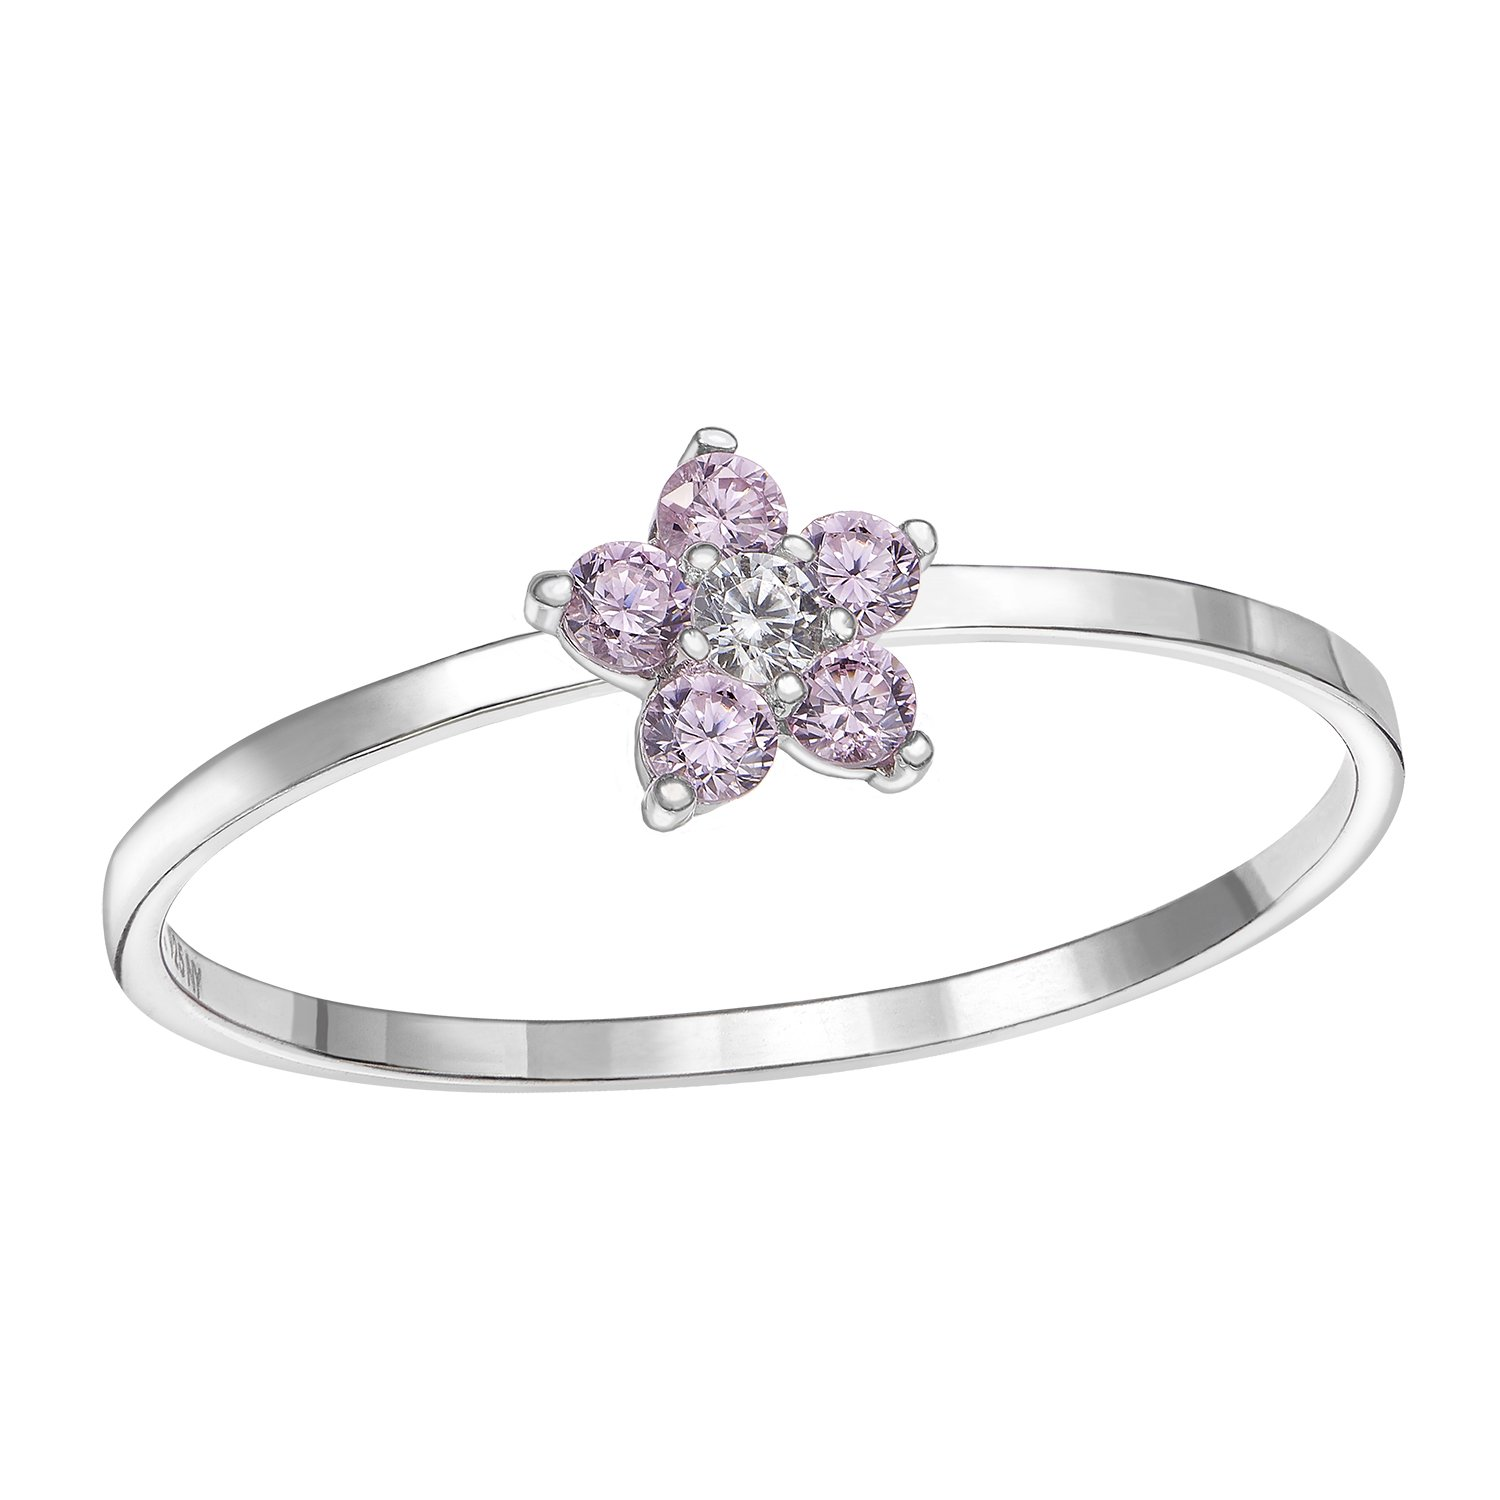 Tilo Jewelry Sterling Silver Flower Ring with Simulated Birthstone /& CZ for Girls